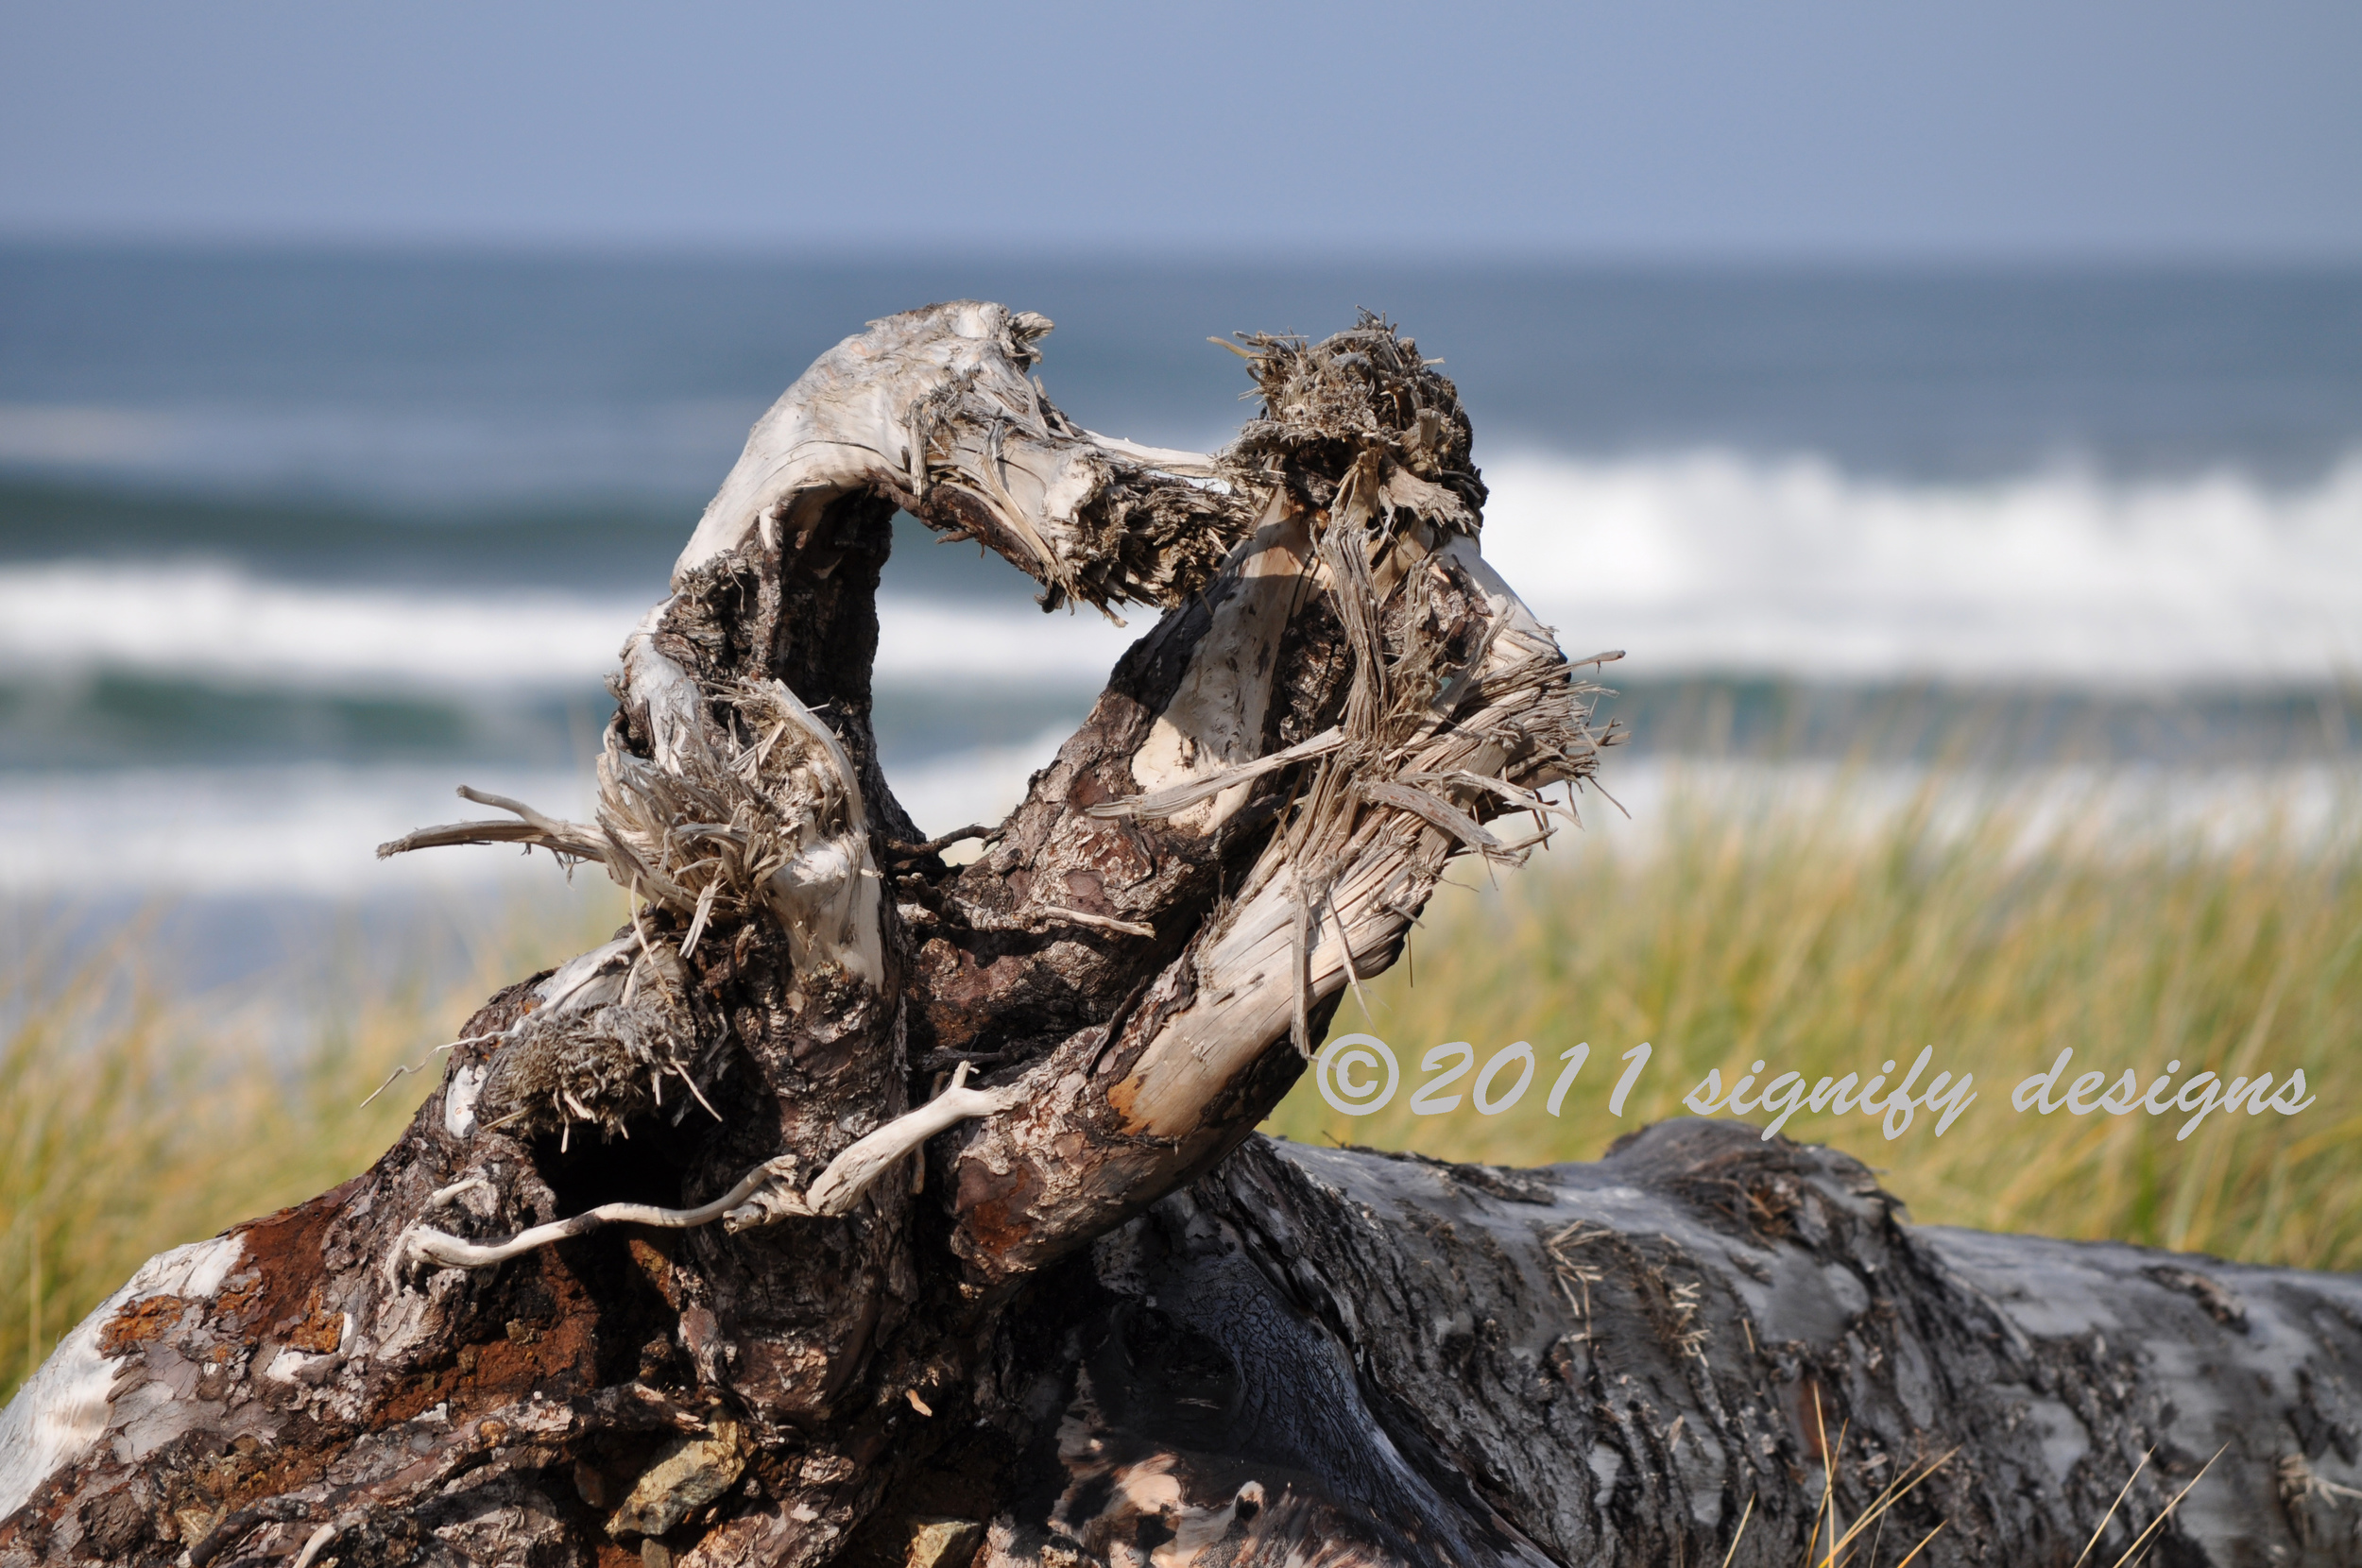 """800x600      I happened upon this fallen tree at the Oregon Coast, whose upturned roots were in the shape of a heart. It was so remarkable to me that God would put reminders of his love even in the roots of trees! His promises are over all creation … sometimes very obvious, sometimes hidden from view …and sometimes """"so faint you wouldn't even know it was there unless you were looking for it."""" (Shari MacDonald Strong)     Normal   0           false   false   false     EN-US   X-NONE   X-NONE                                  MicrosoftInternetExplorer4                                                                                                                                                                                                                                                                                                                                       st1\:*{behavior:url(#ieooui) }    /* Style Definitions */  table.MsoNormalTable {mso-style-name:""""Table Normal""""; mso-tstyle-rowband-size:0; mso-tstyle-colband-size:0; mso-style-noshow:yes; mso-style-priority:99; mso-style-parent:""""""""; mso-padding-alt:0in 5.4pt 0in 5.4pt; mso-para-margin:0in; mso-para-margin-bottom:.0001pt; mso-pagination:widow-orphan; font-size:10.0pt; font-family:""""Times New Roman"""",""""serif"""";}"""